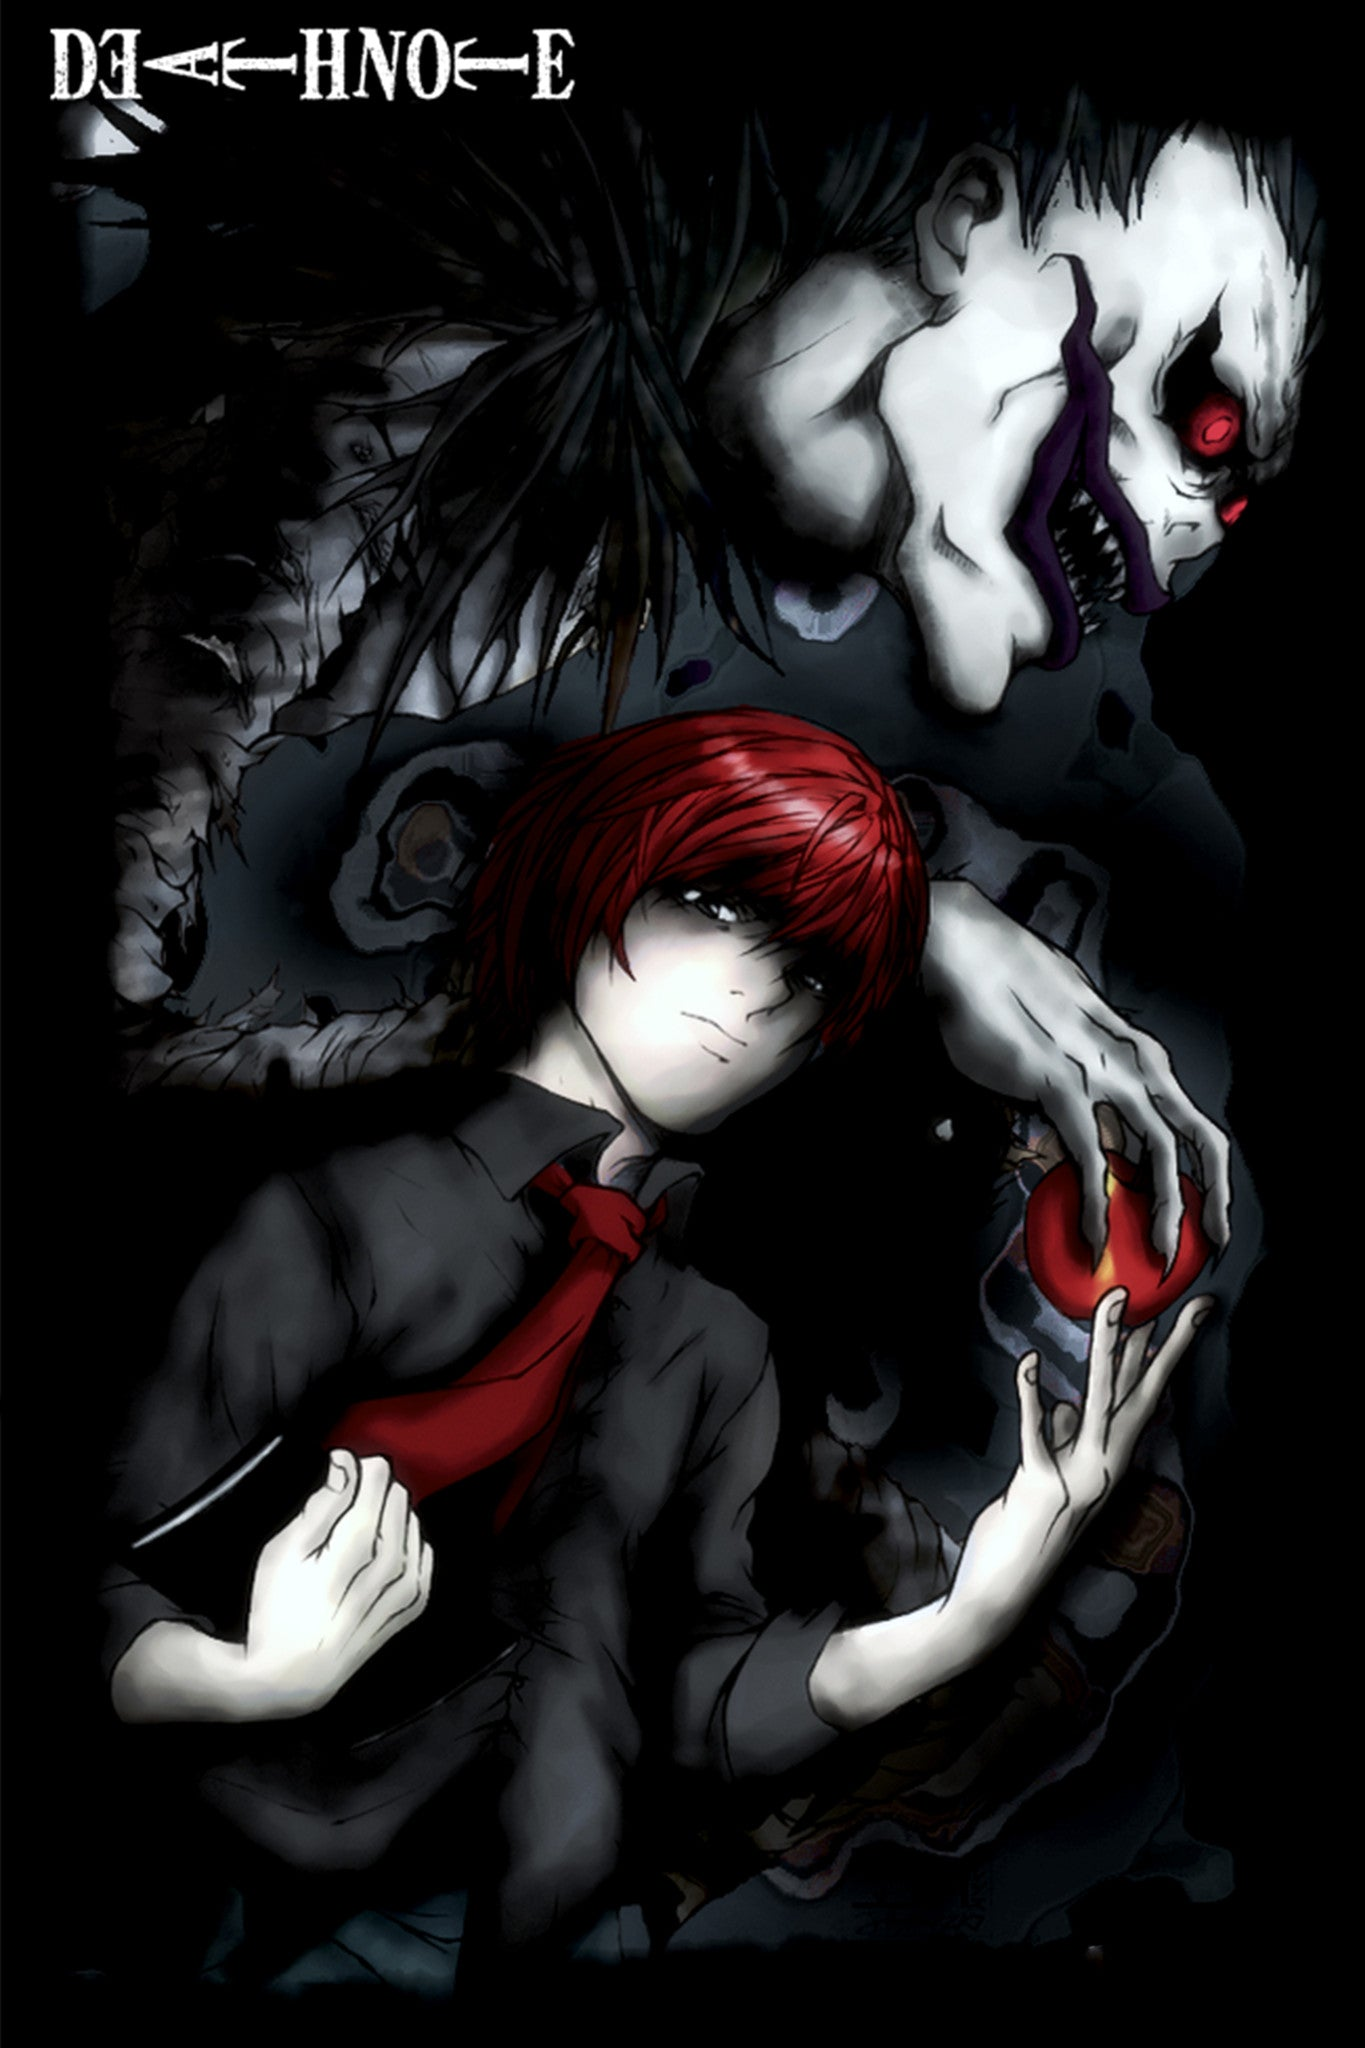 Captivating ... Anime Ratio And Ryuk From Death Note Poster In India By Sillypunter ...